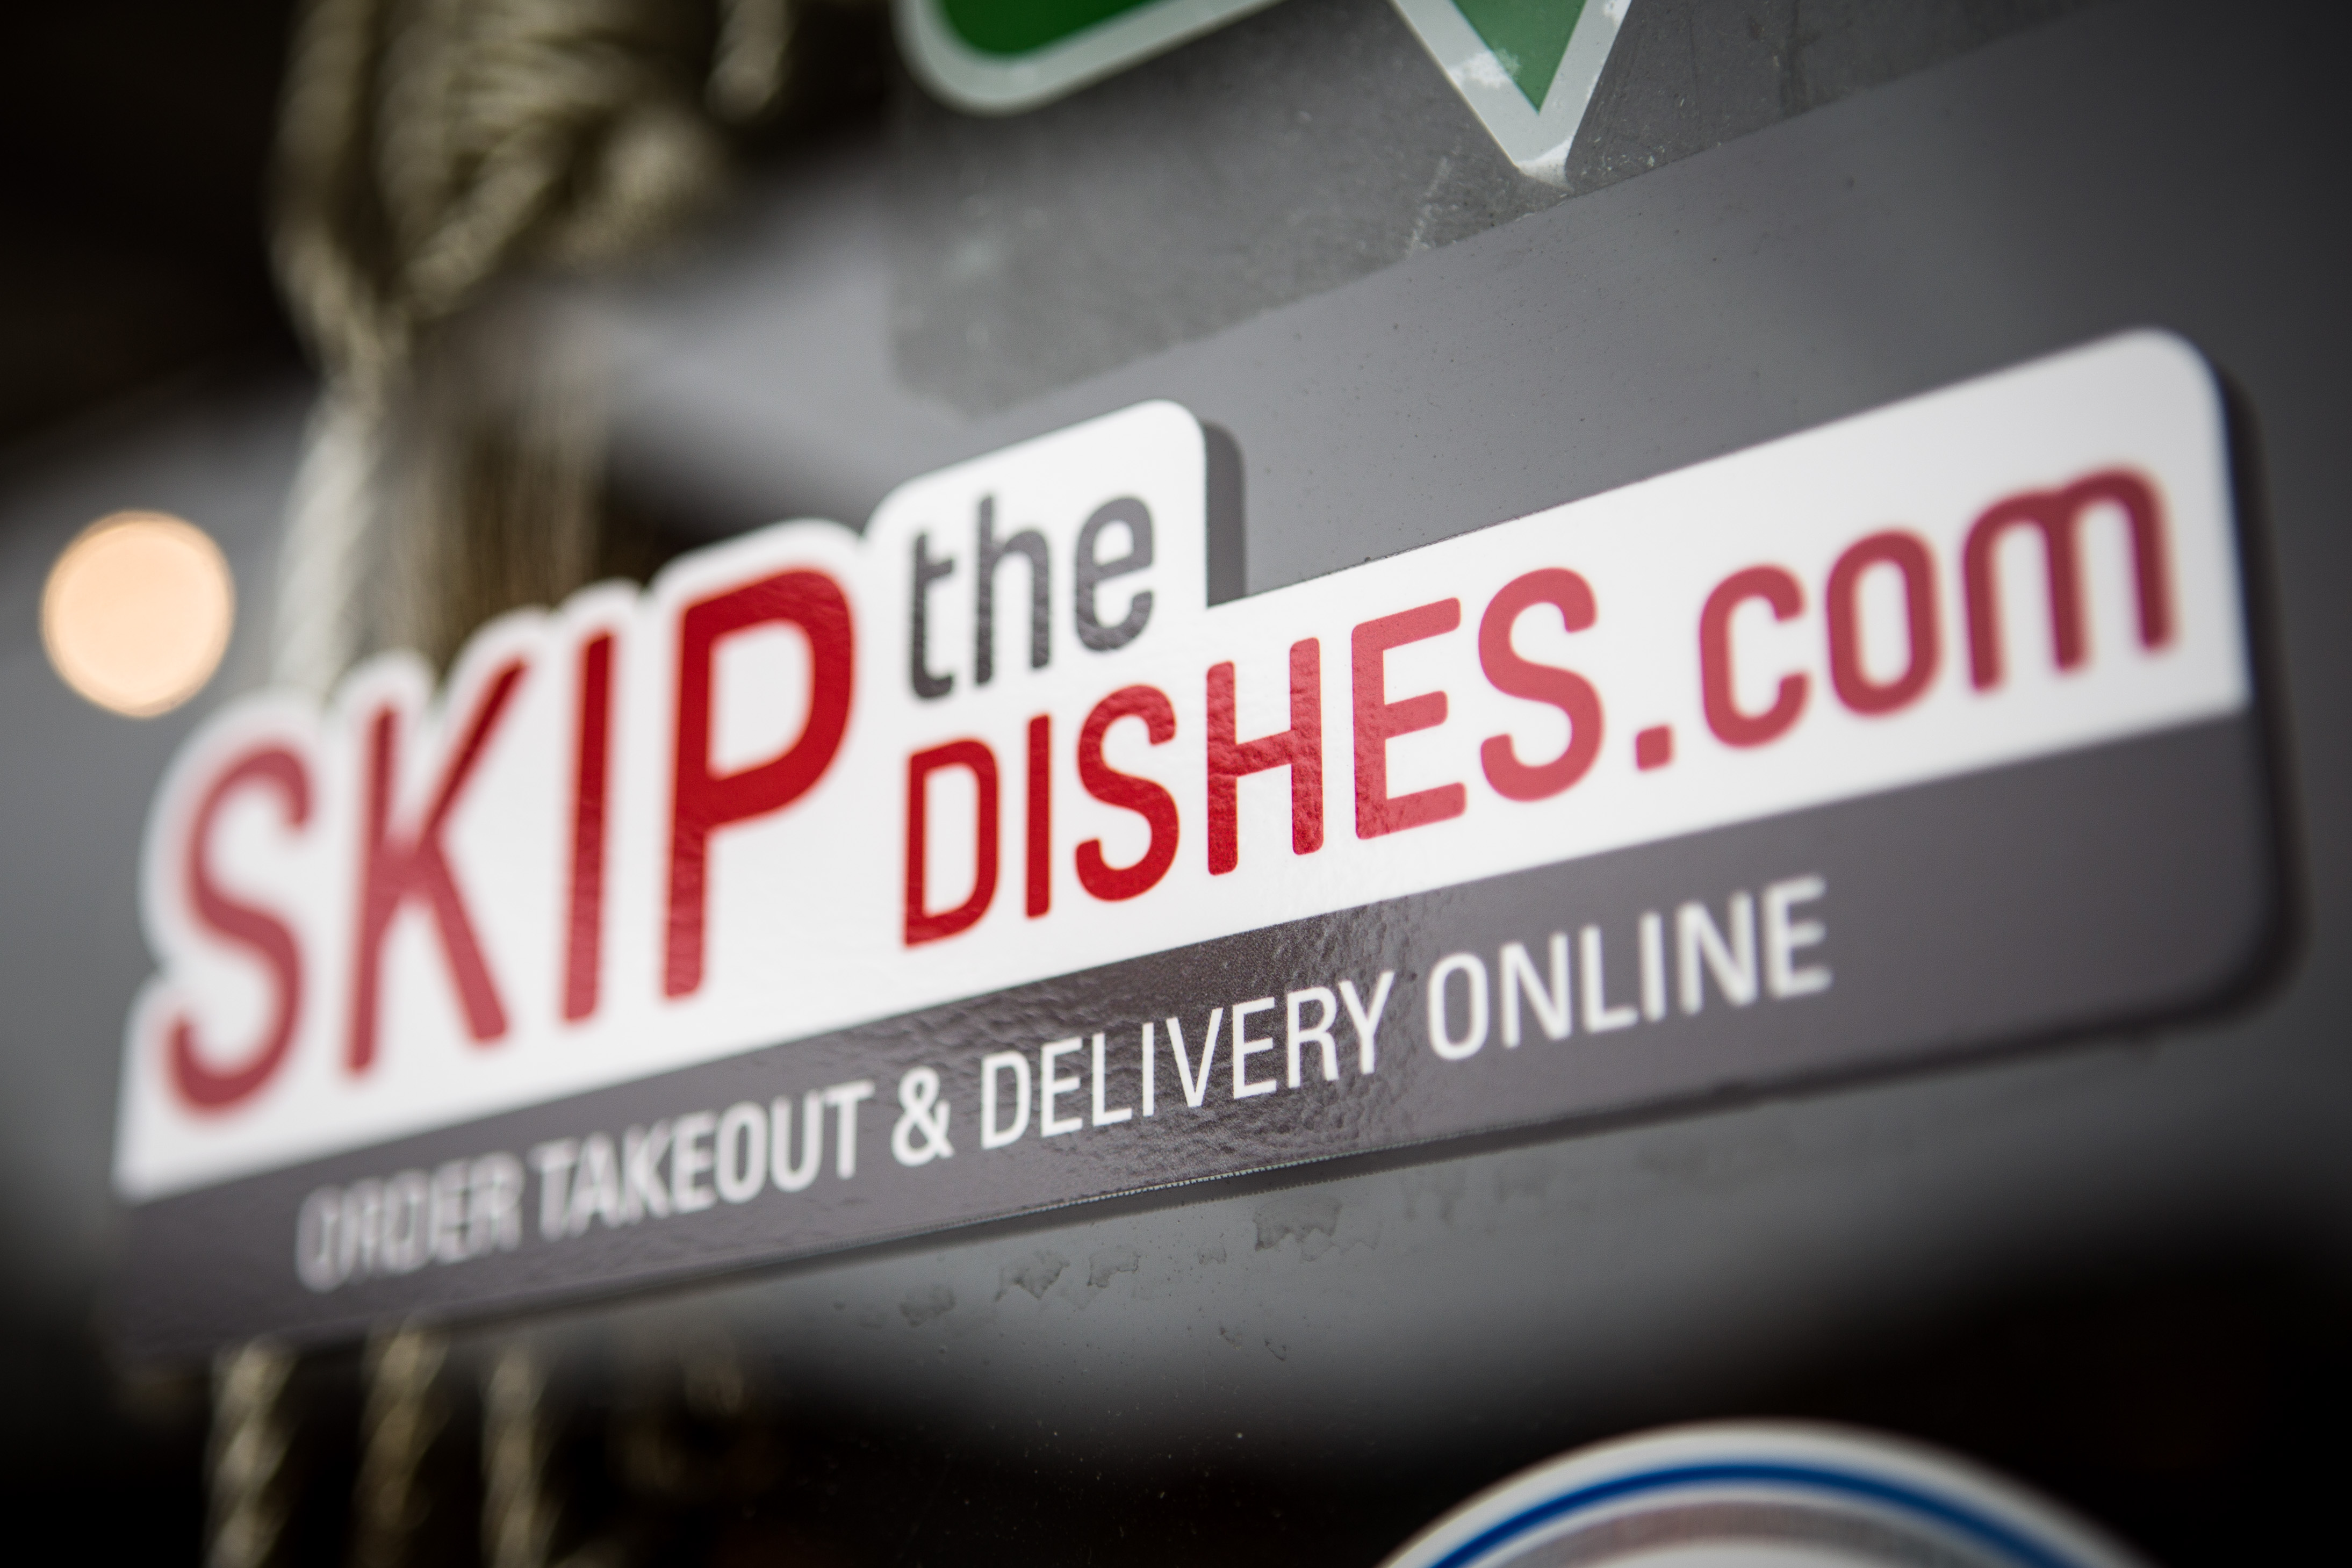 d5d3ad07d2 Skip the Dishes apologizes for ducking questions on pay and benefits ...